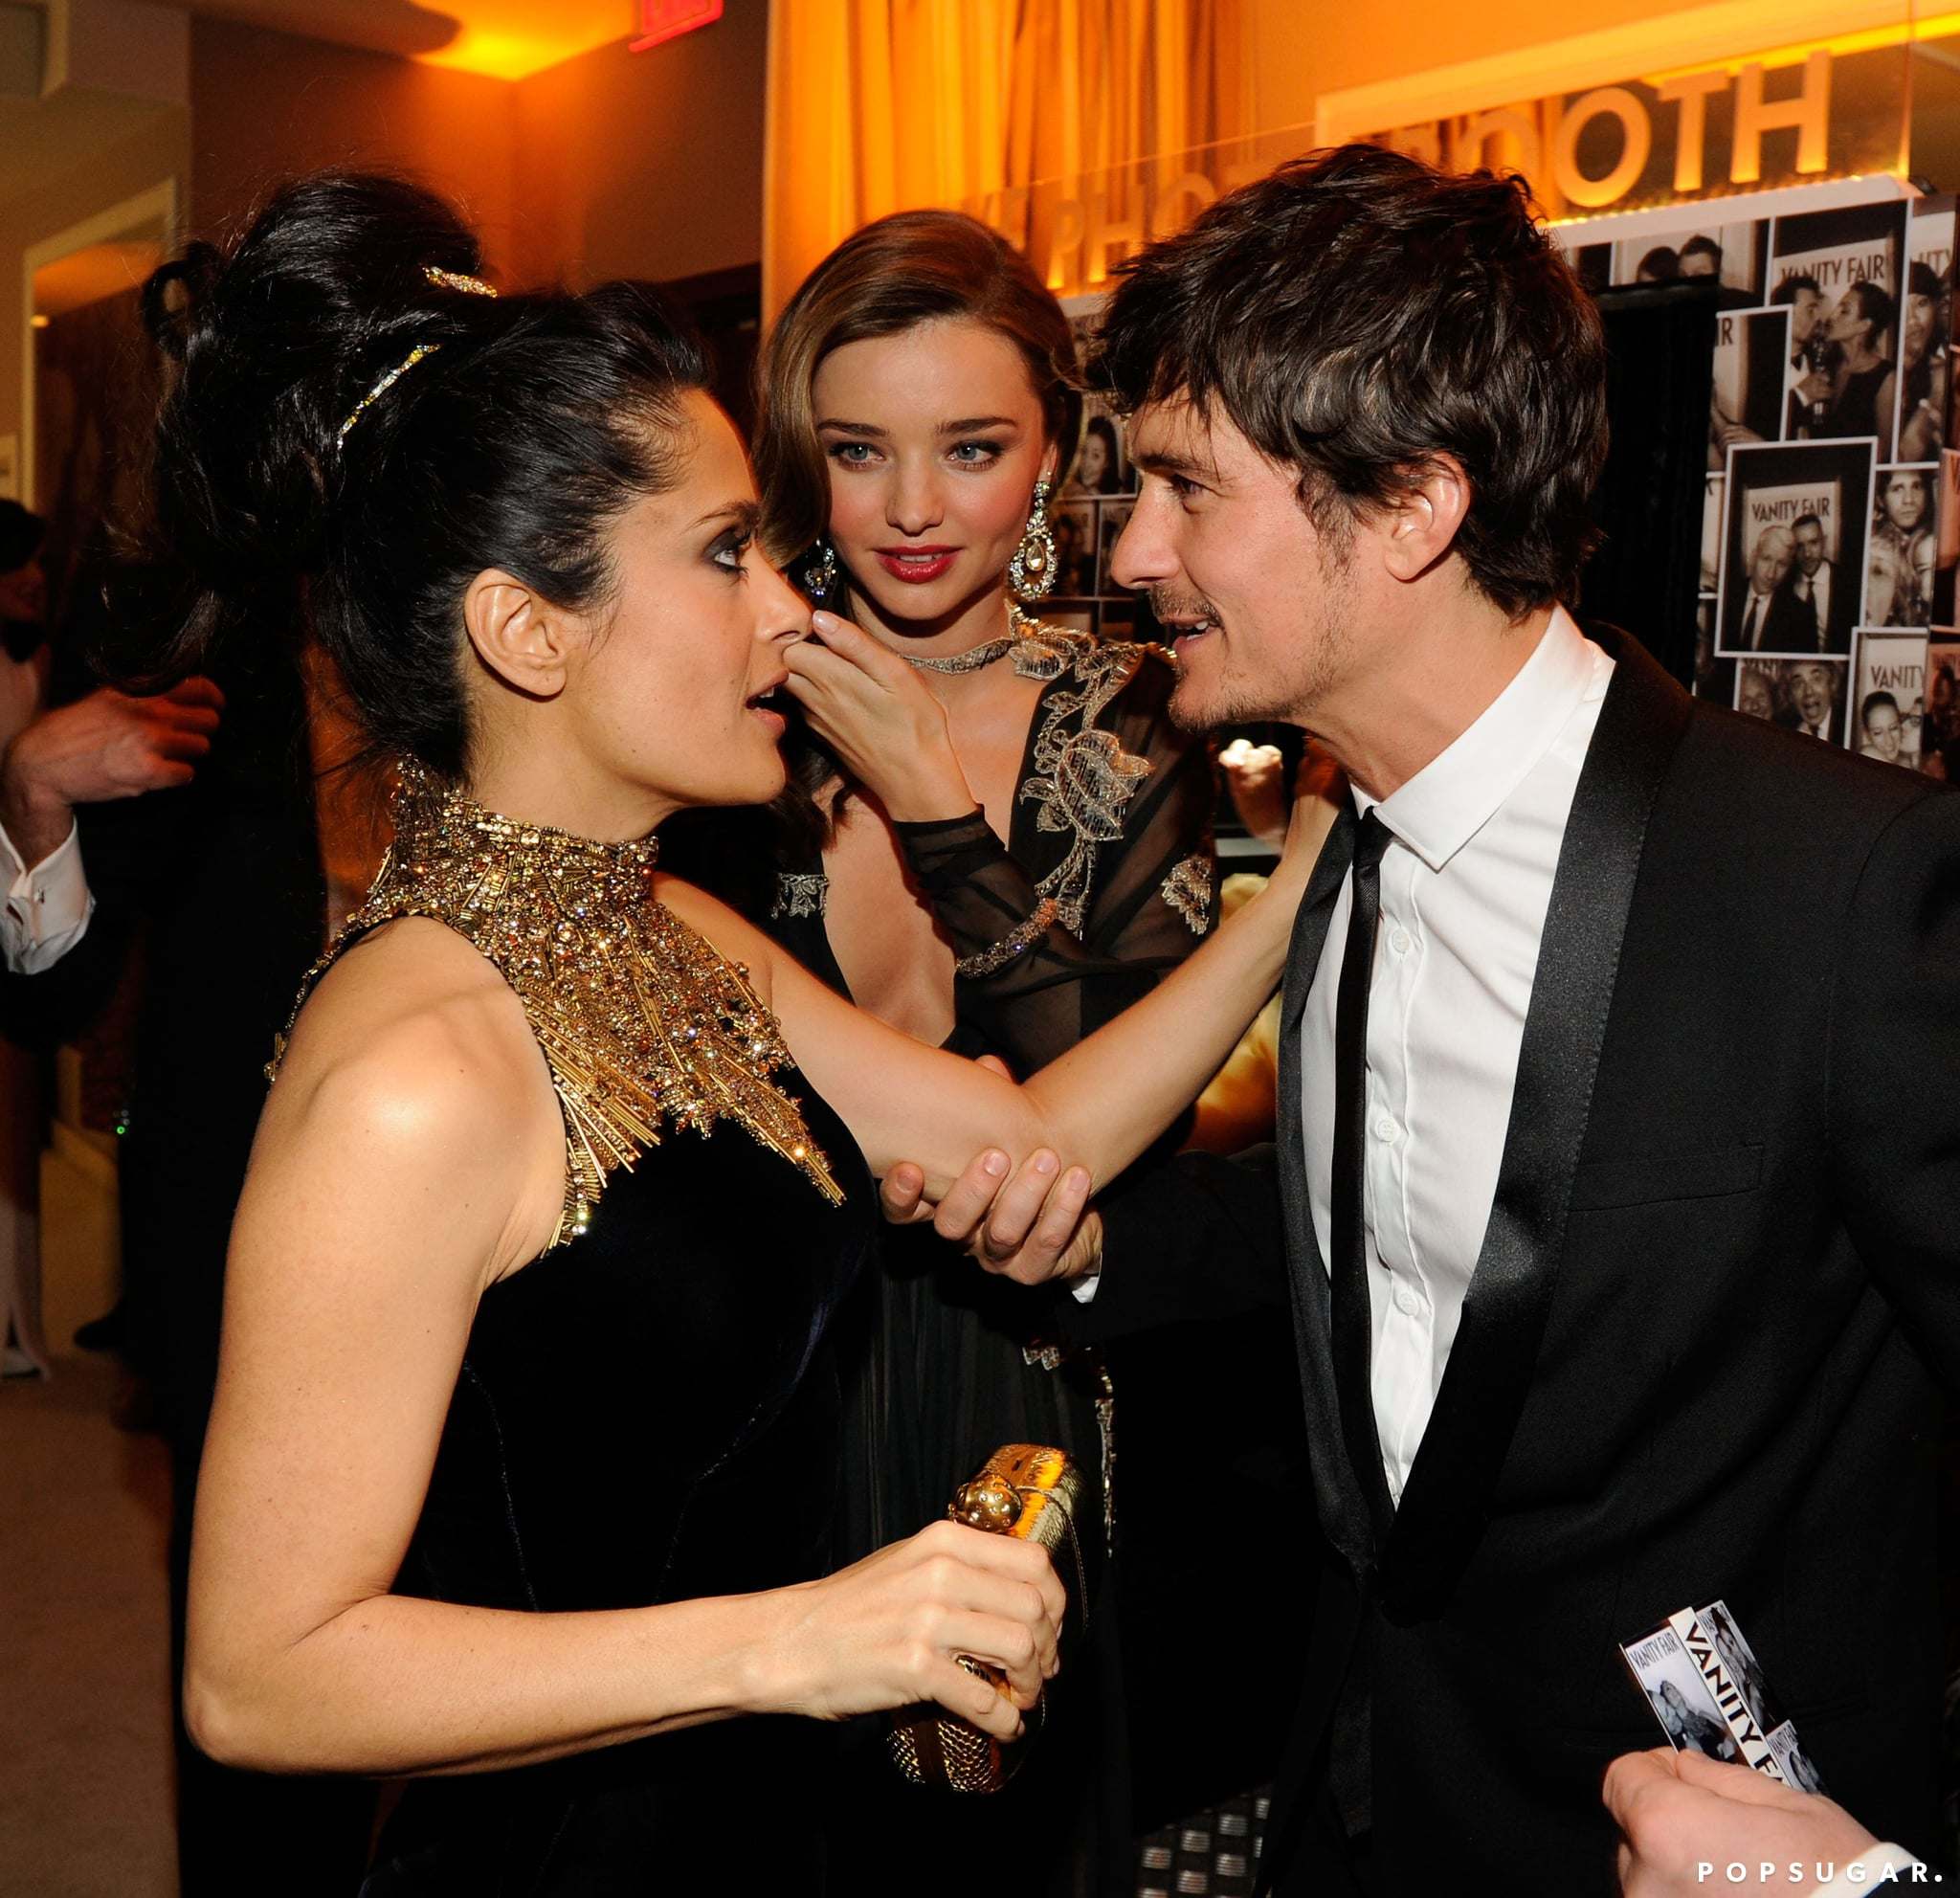 Salma Hayek greeted Orlando Bloom and Miranda Kerr at Vanity Fair's Oscar after-party.